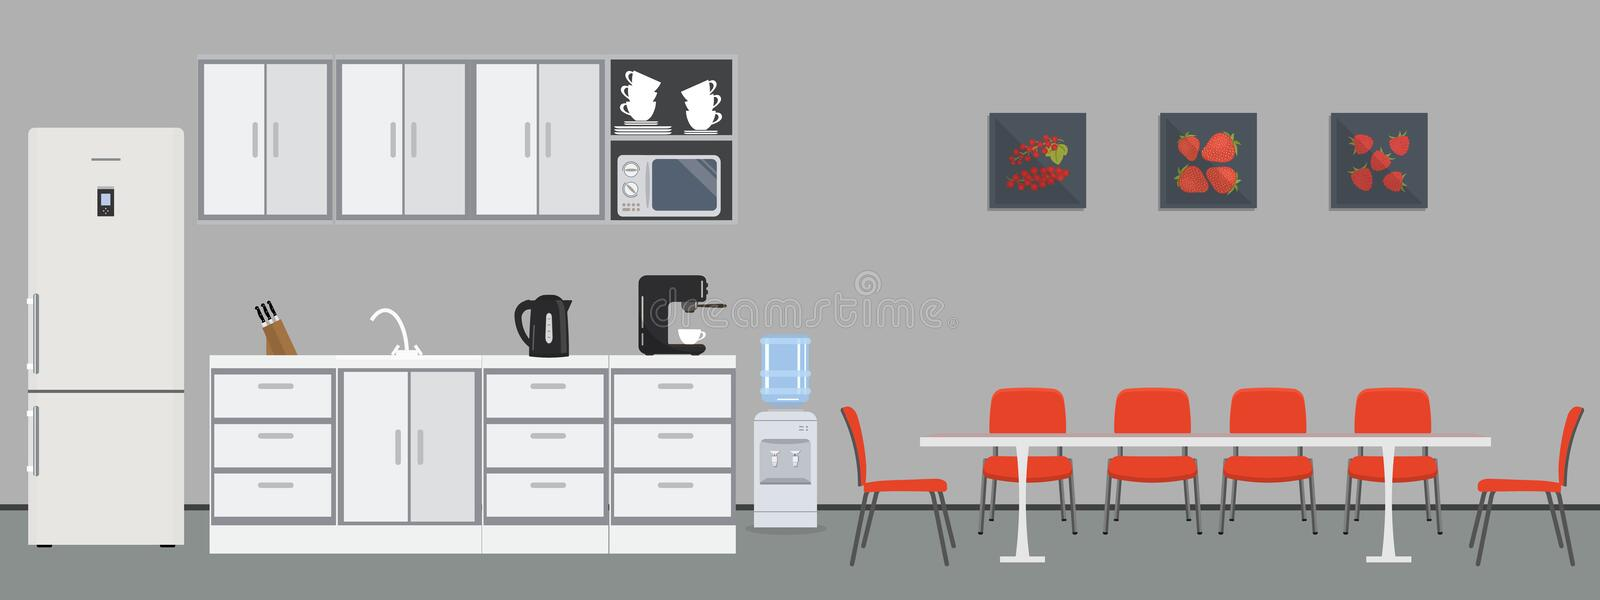 Office kitchen. Dining room in office stock illustration